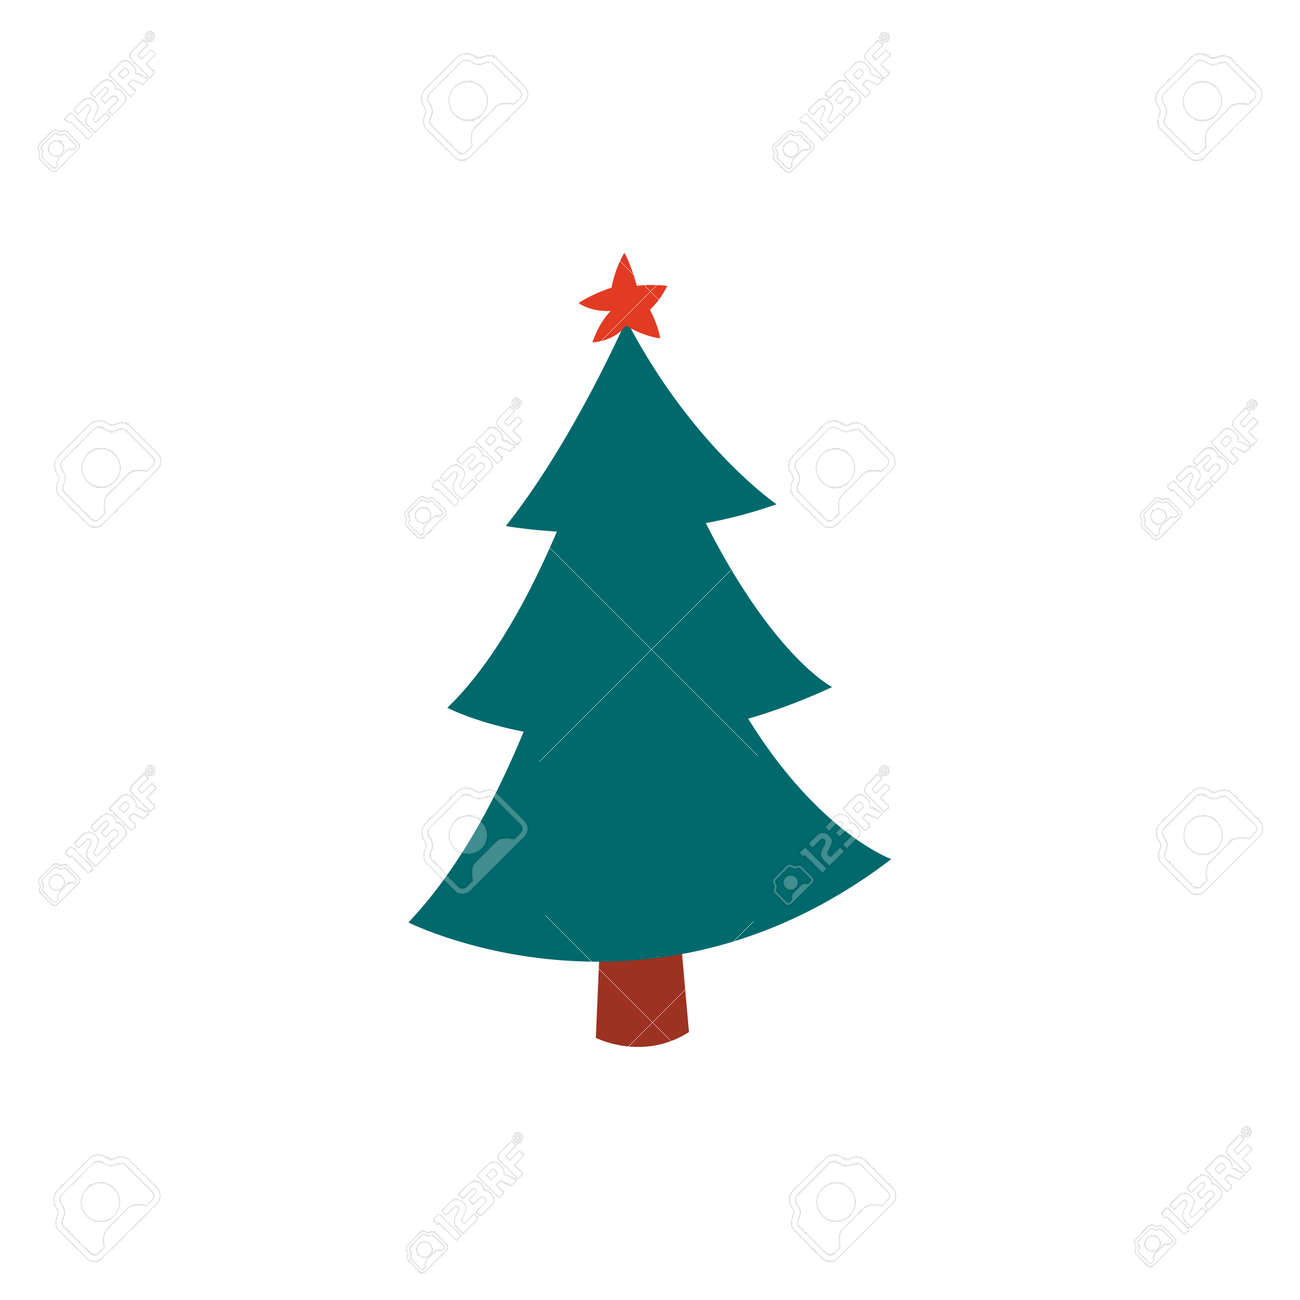 Christmas tree. Modern design. Christmas and New Year s elements for decoration. Vector illustration isolated on white. - 169772084